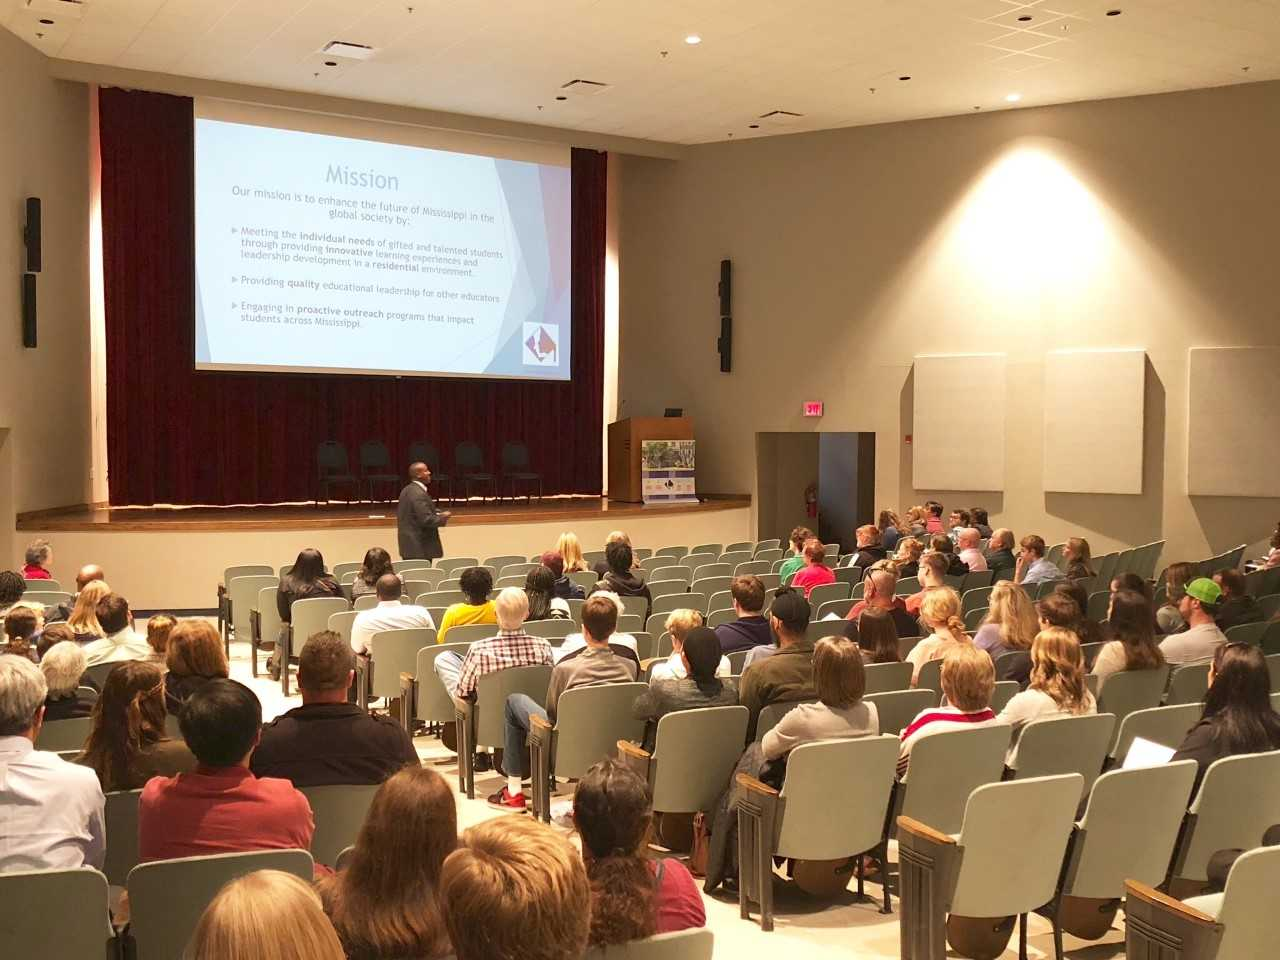 The prospective students and their families listening to Dr. McConnell's presentation.